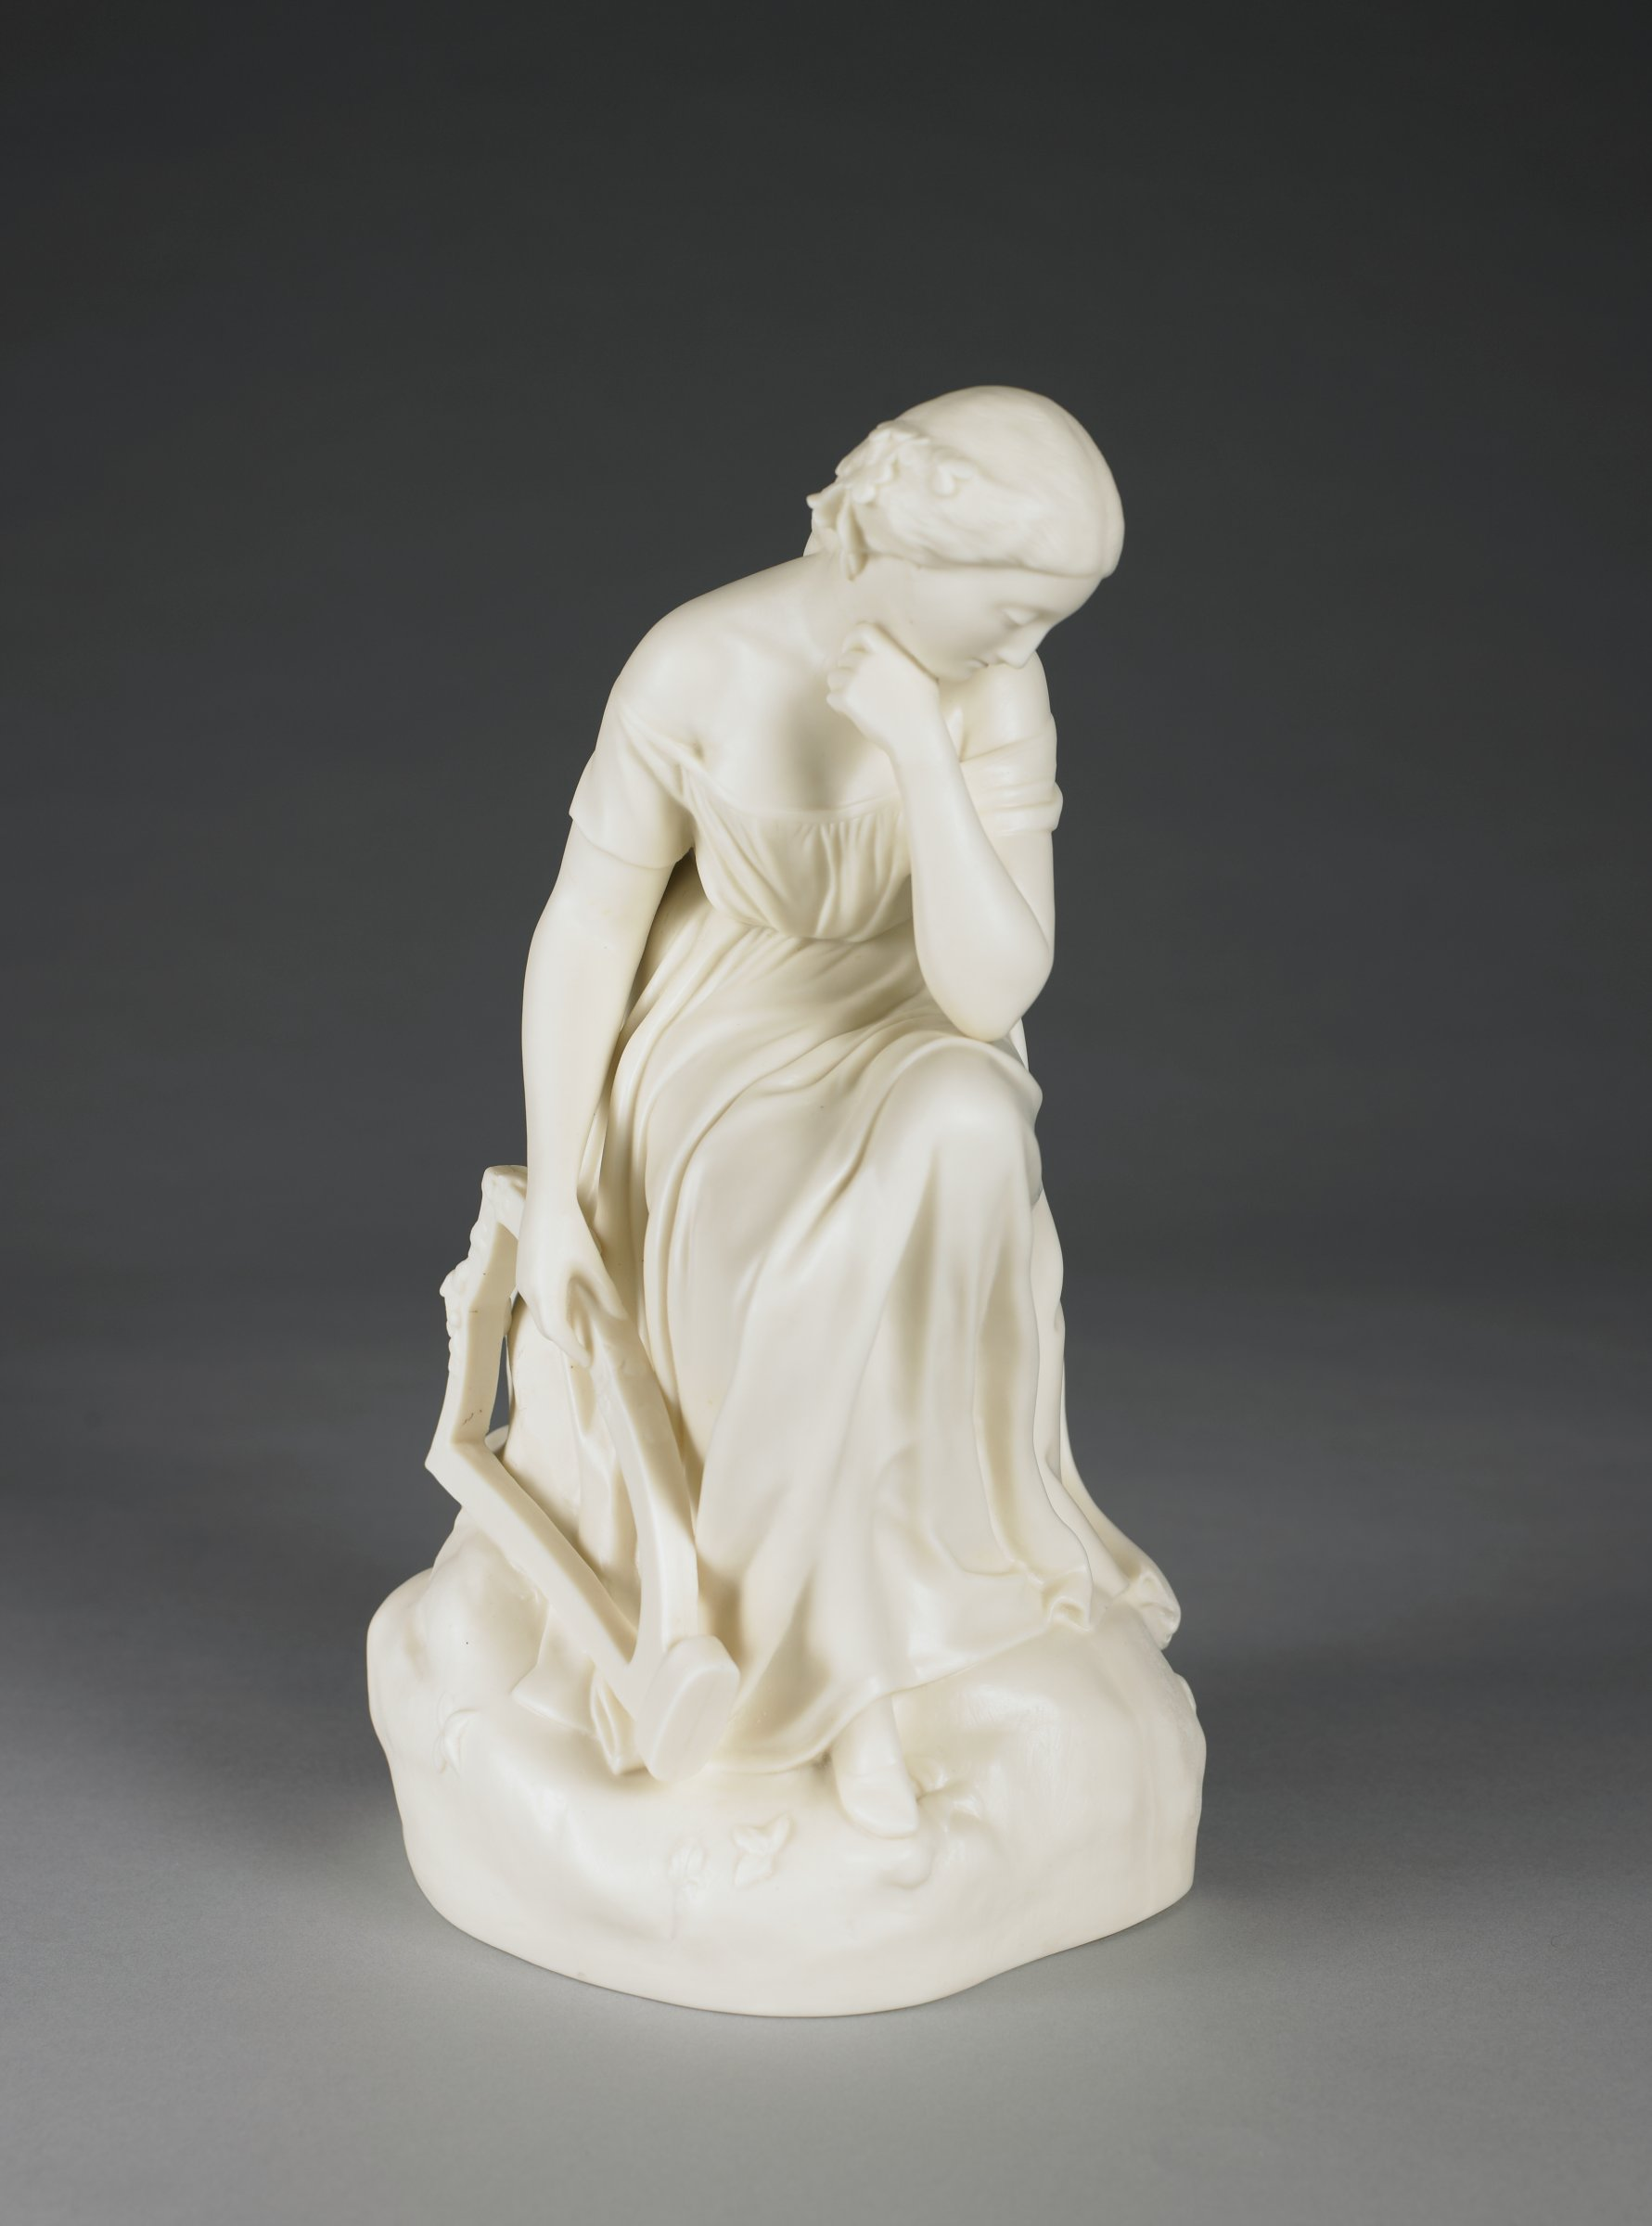 Hollow Parian figure of a seated woman wearing an off-the-shoulder, flowing gown, her left leg propped on a rock, her left arm bent and resting on her knee, her hand at her chin, her right arm dropped and holding a small harp at her side, on an irregular rocky base.